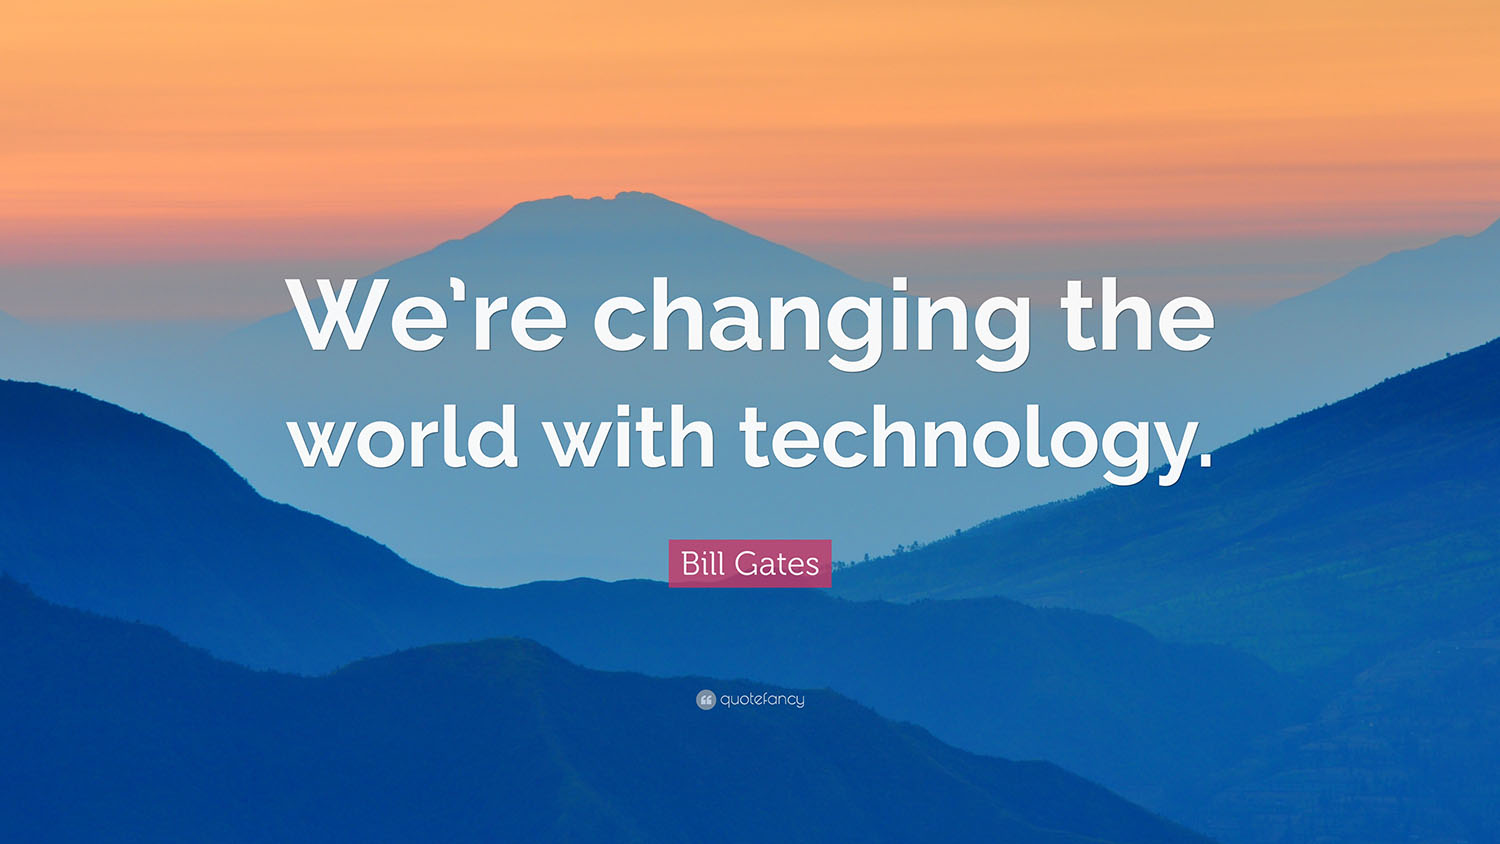 technology quotes gates bill quote changing re tourism accelerator wallpapers business articles quotefancy